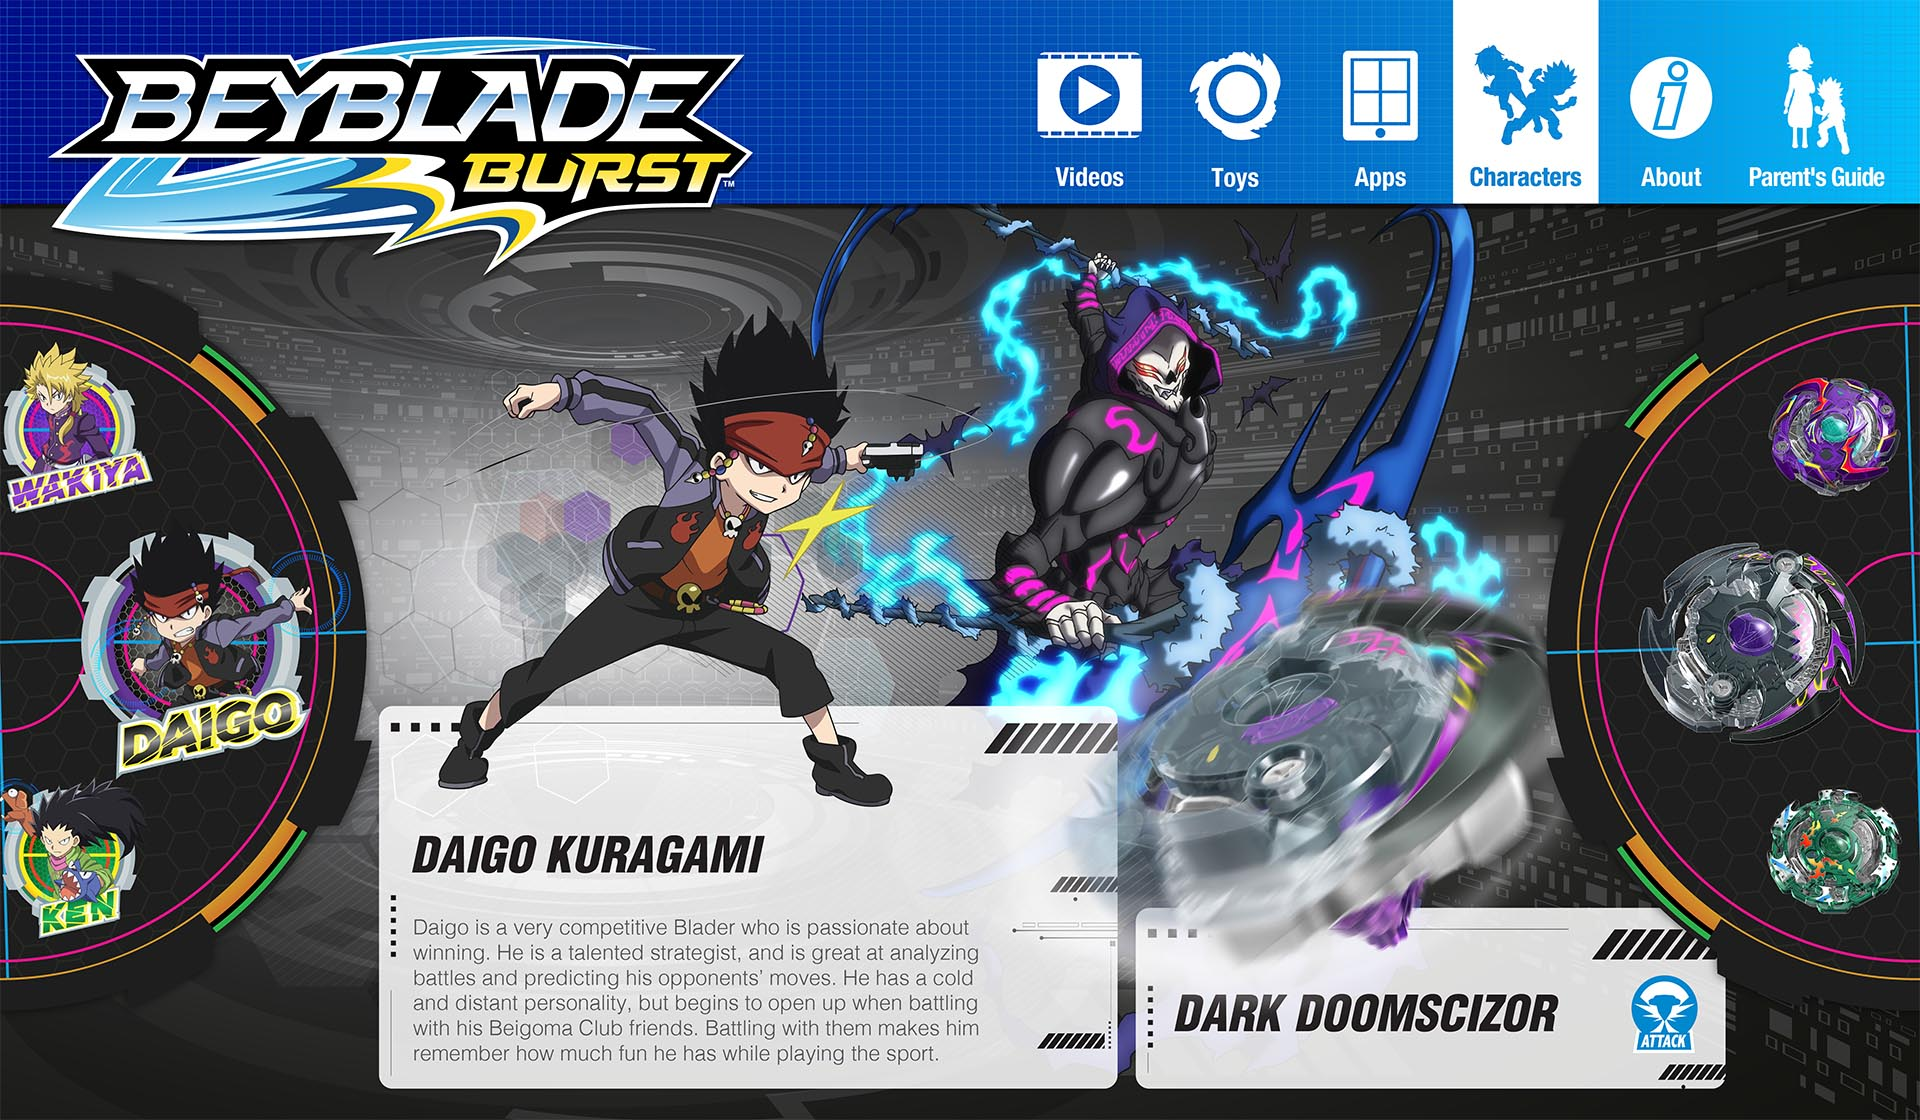 The Official BEYBLADE BURST Website – WORLDER, Inc.